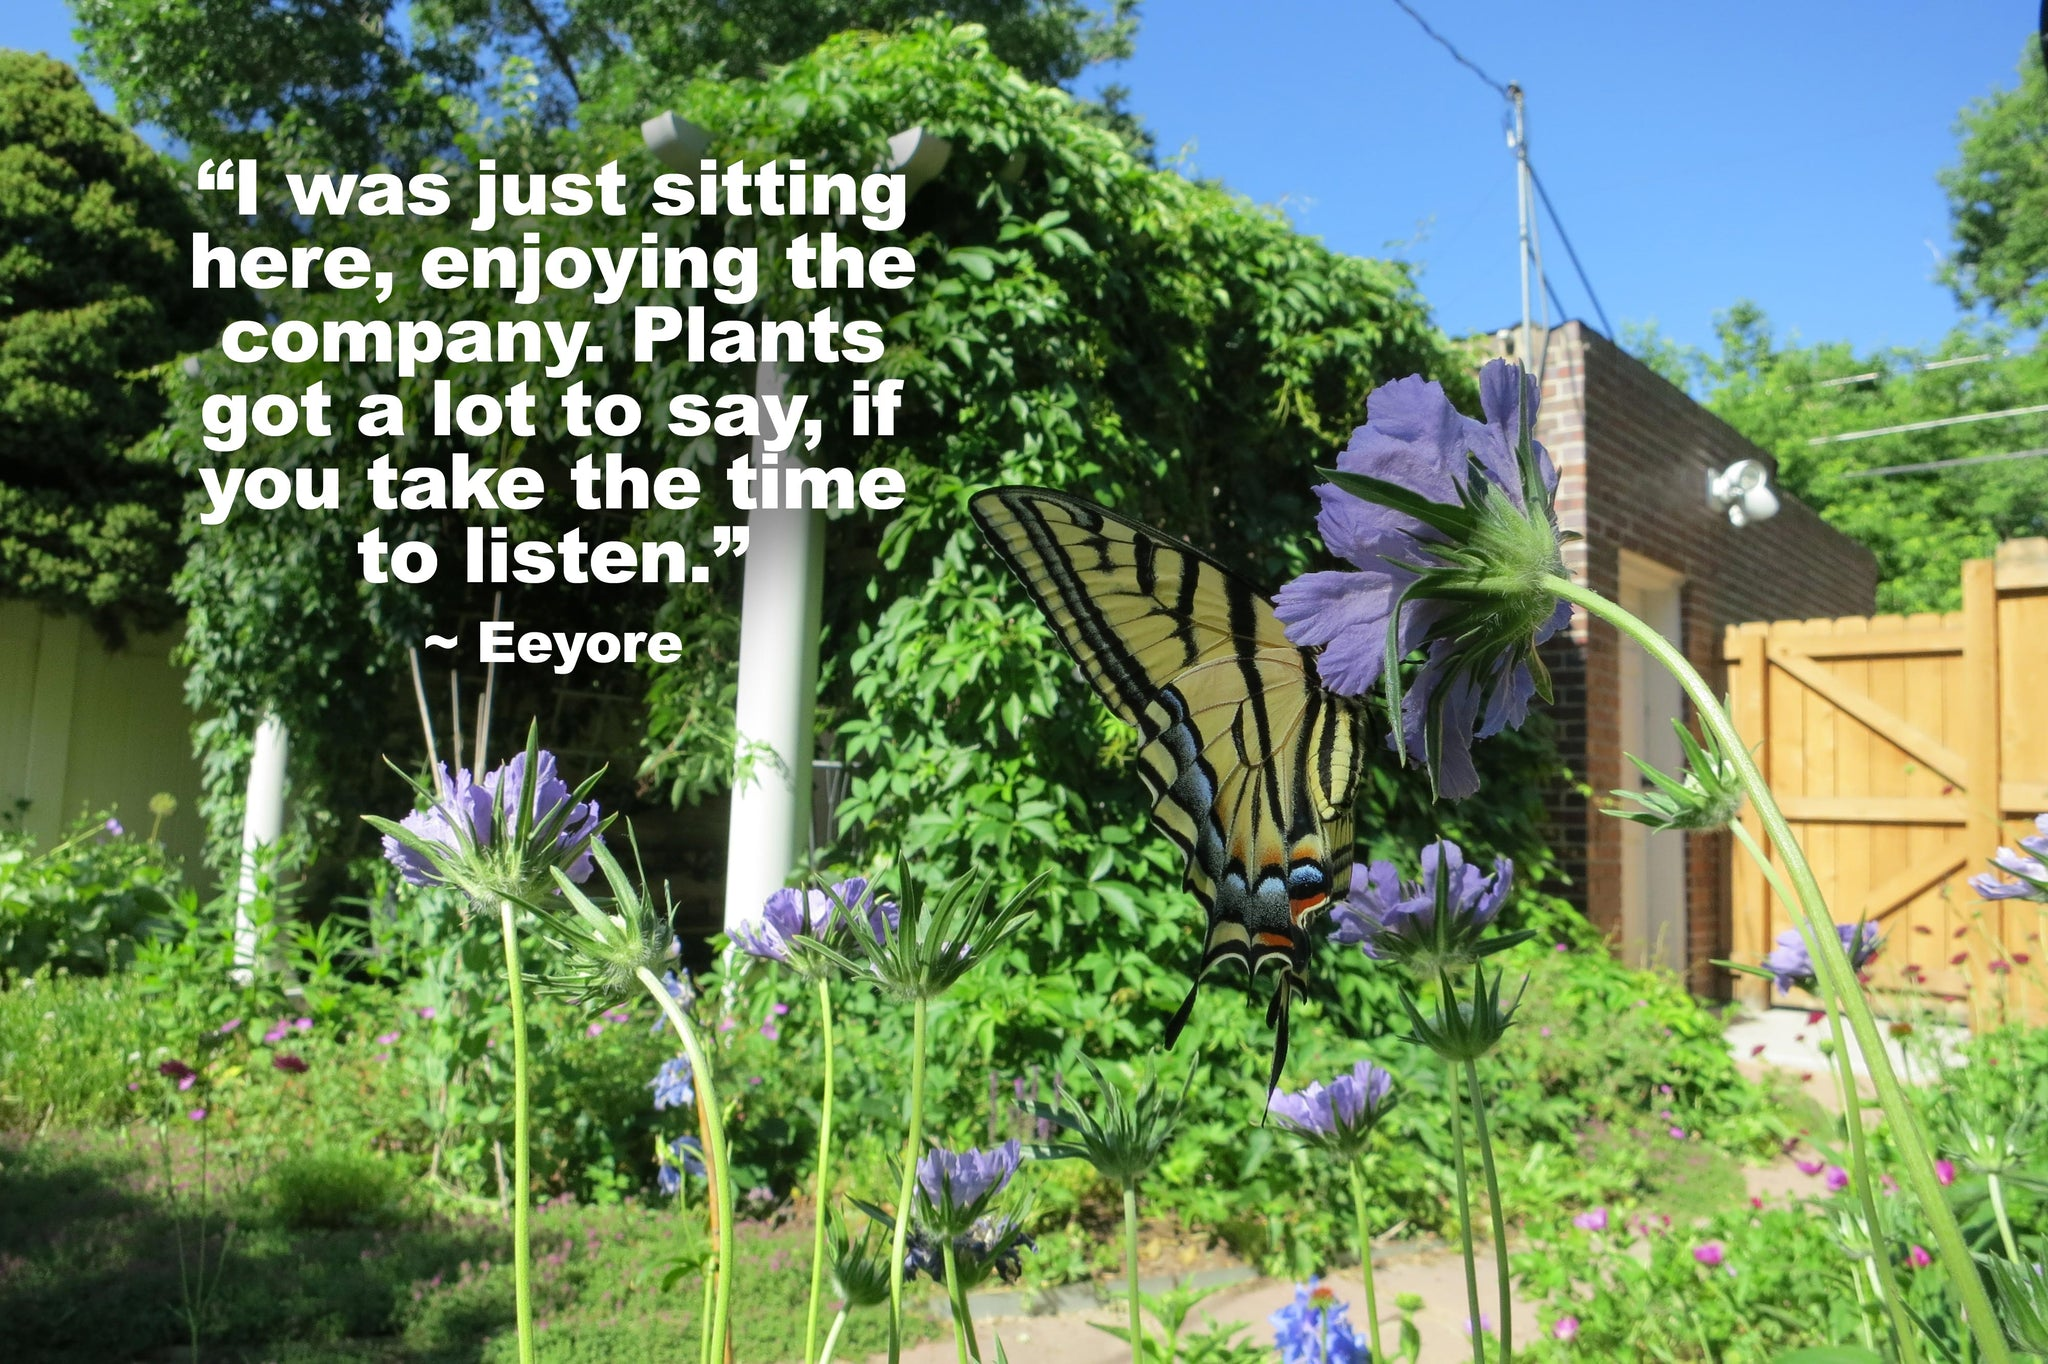 Garden Quote: I was just sittin' here enjoyin' the company. Plants got a lot to say, if you take the take to listen ~ Eeyore